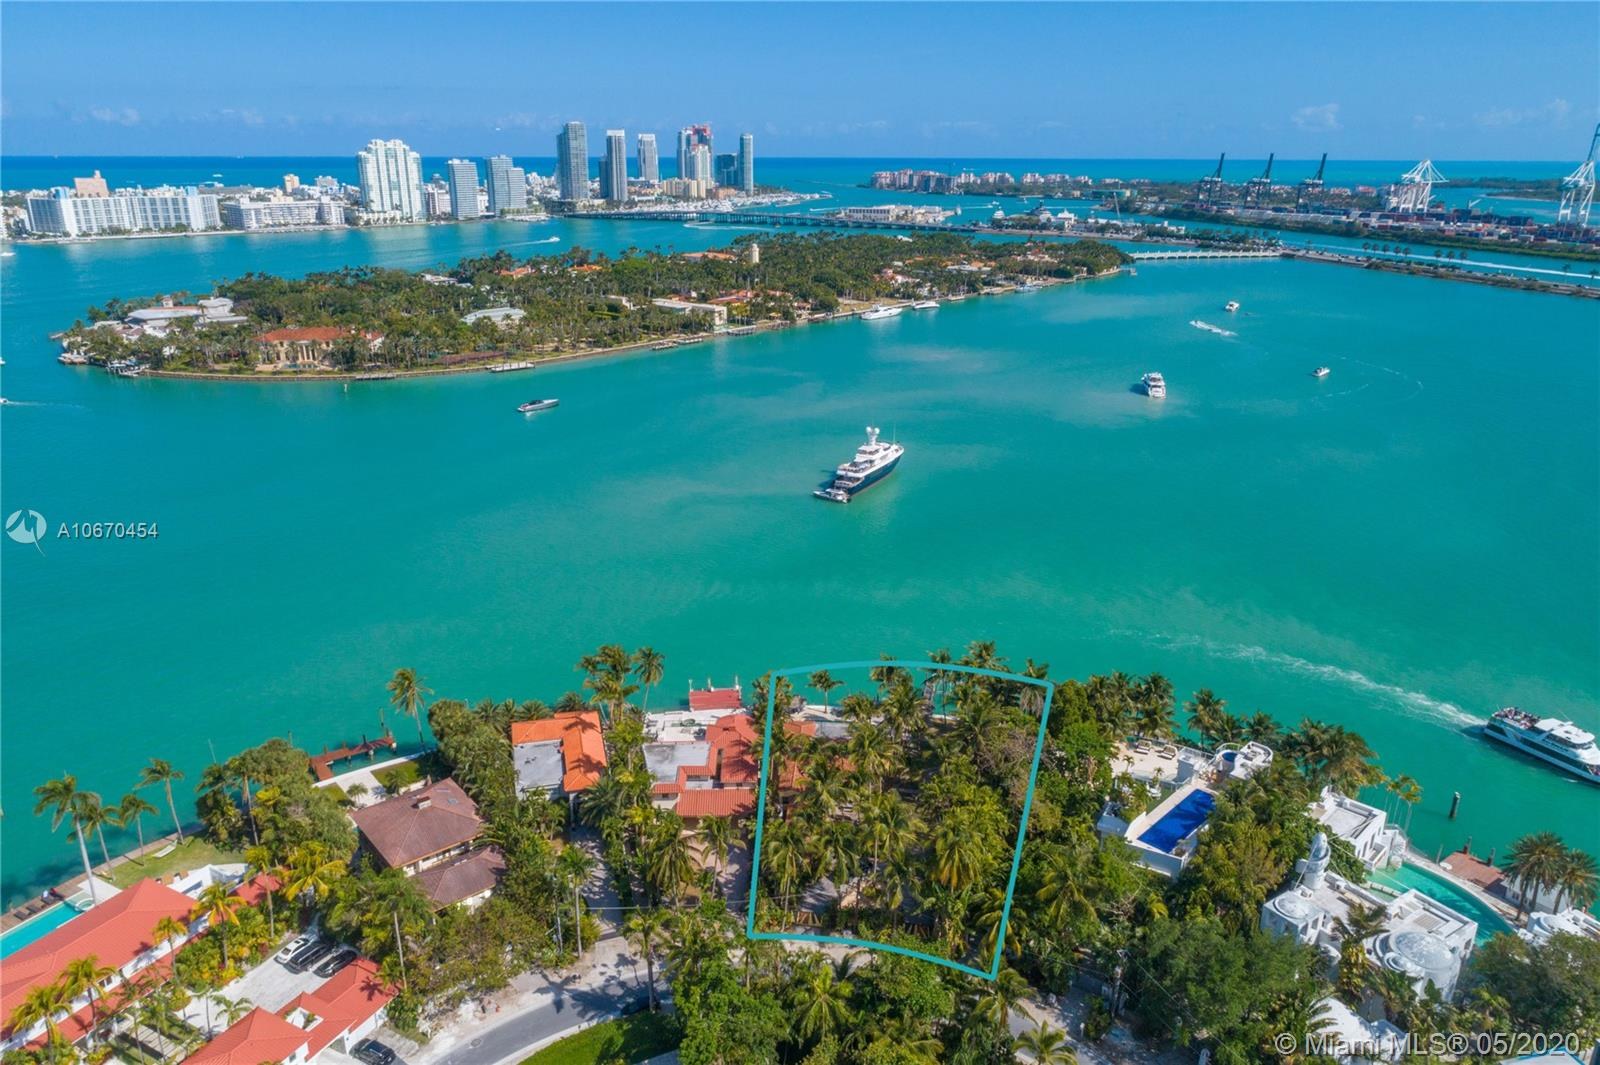 Rare development opportunity on expansive 19,714 square foot lot on guard gated Hibiscus Island. Perfect landscape for your dream home with 143 ft of water frontage and wide open water views. Enjoy living in close proximity to Miami Beach and Downtown Miami. Adjacent property, 2 S Hibiscus Drive, also available for purchase.